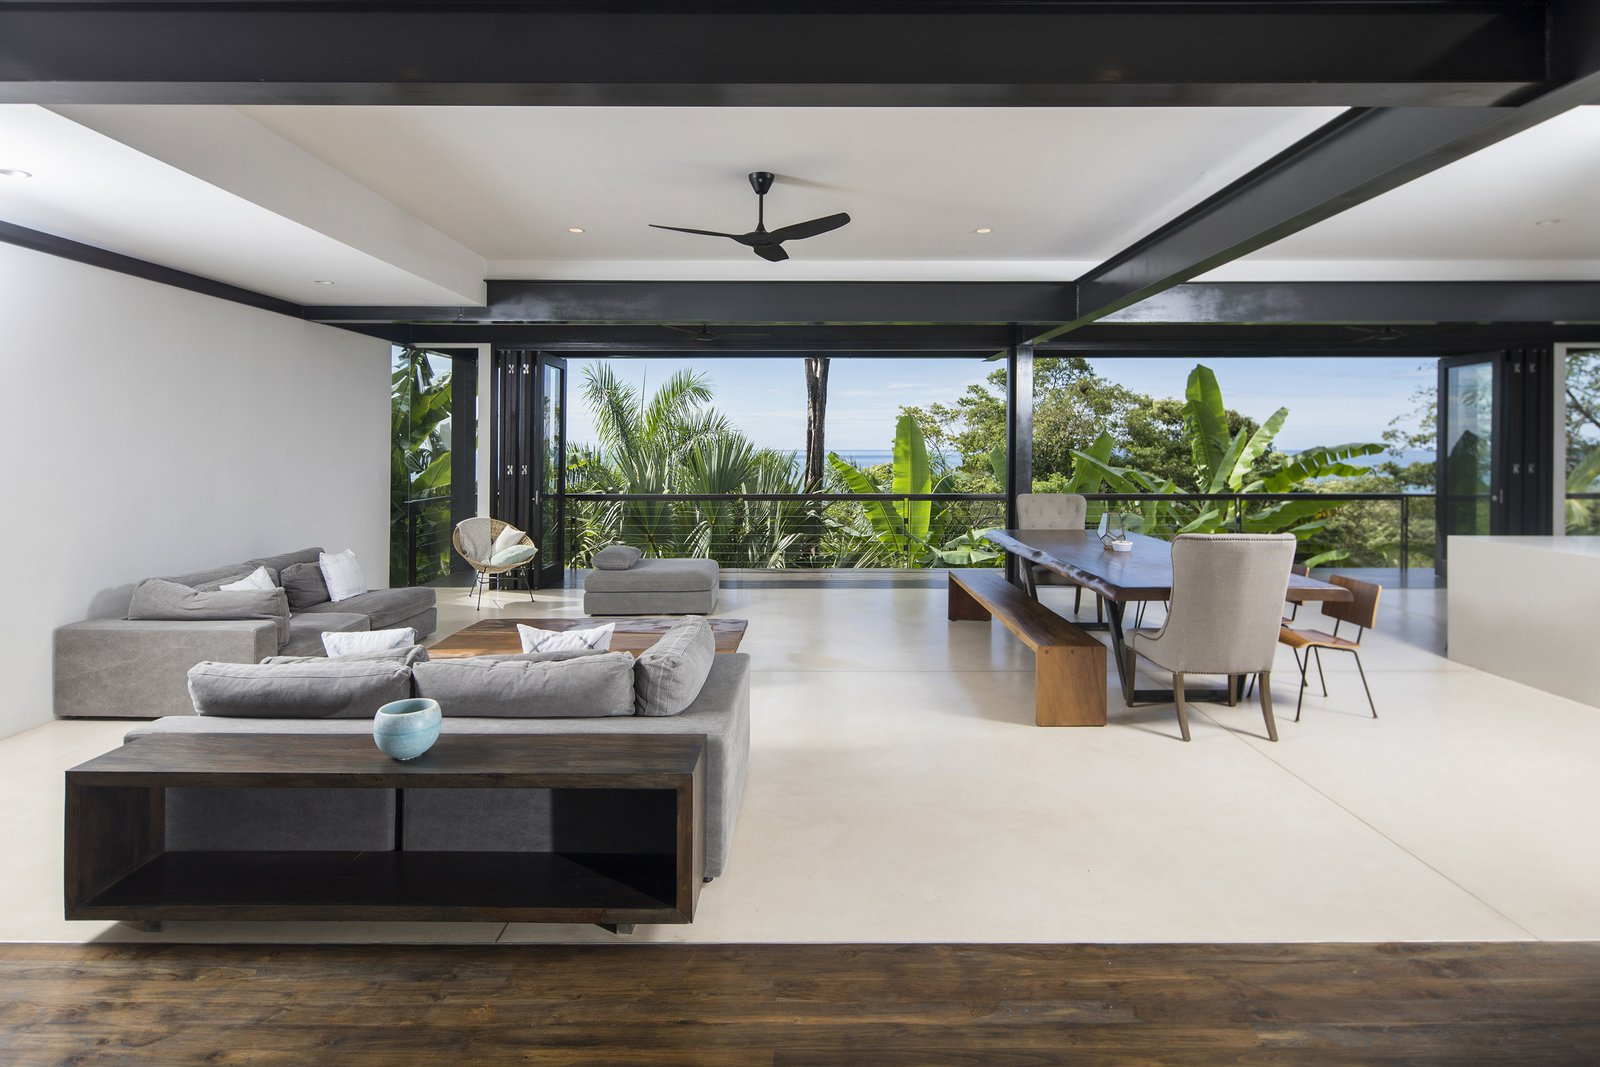 Living, Bench, Sofa, Dark Hardwood, Console Tables, Coffee Tables, Ottomans, Recessed, Chair, and Table The bright and airy open-plan living area in Casa Bri Bri.  Best Living Table Ottomans Photos from Slip Away to These Sleek New Villas in a Costa Rican Forest